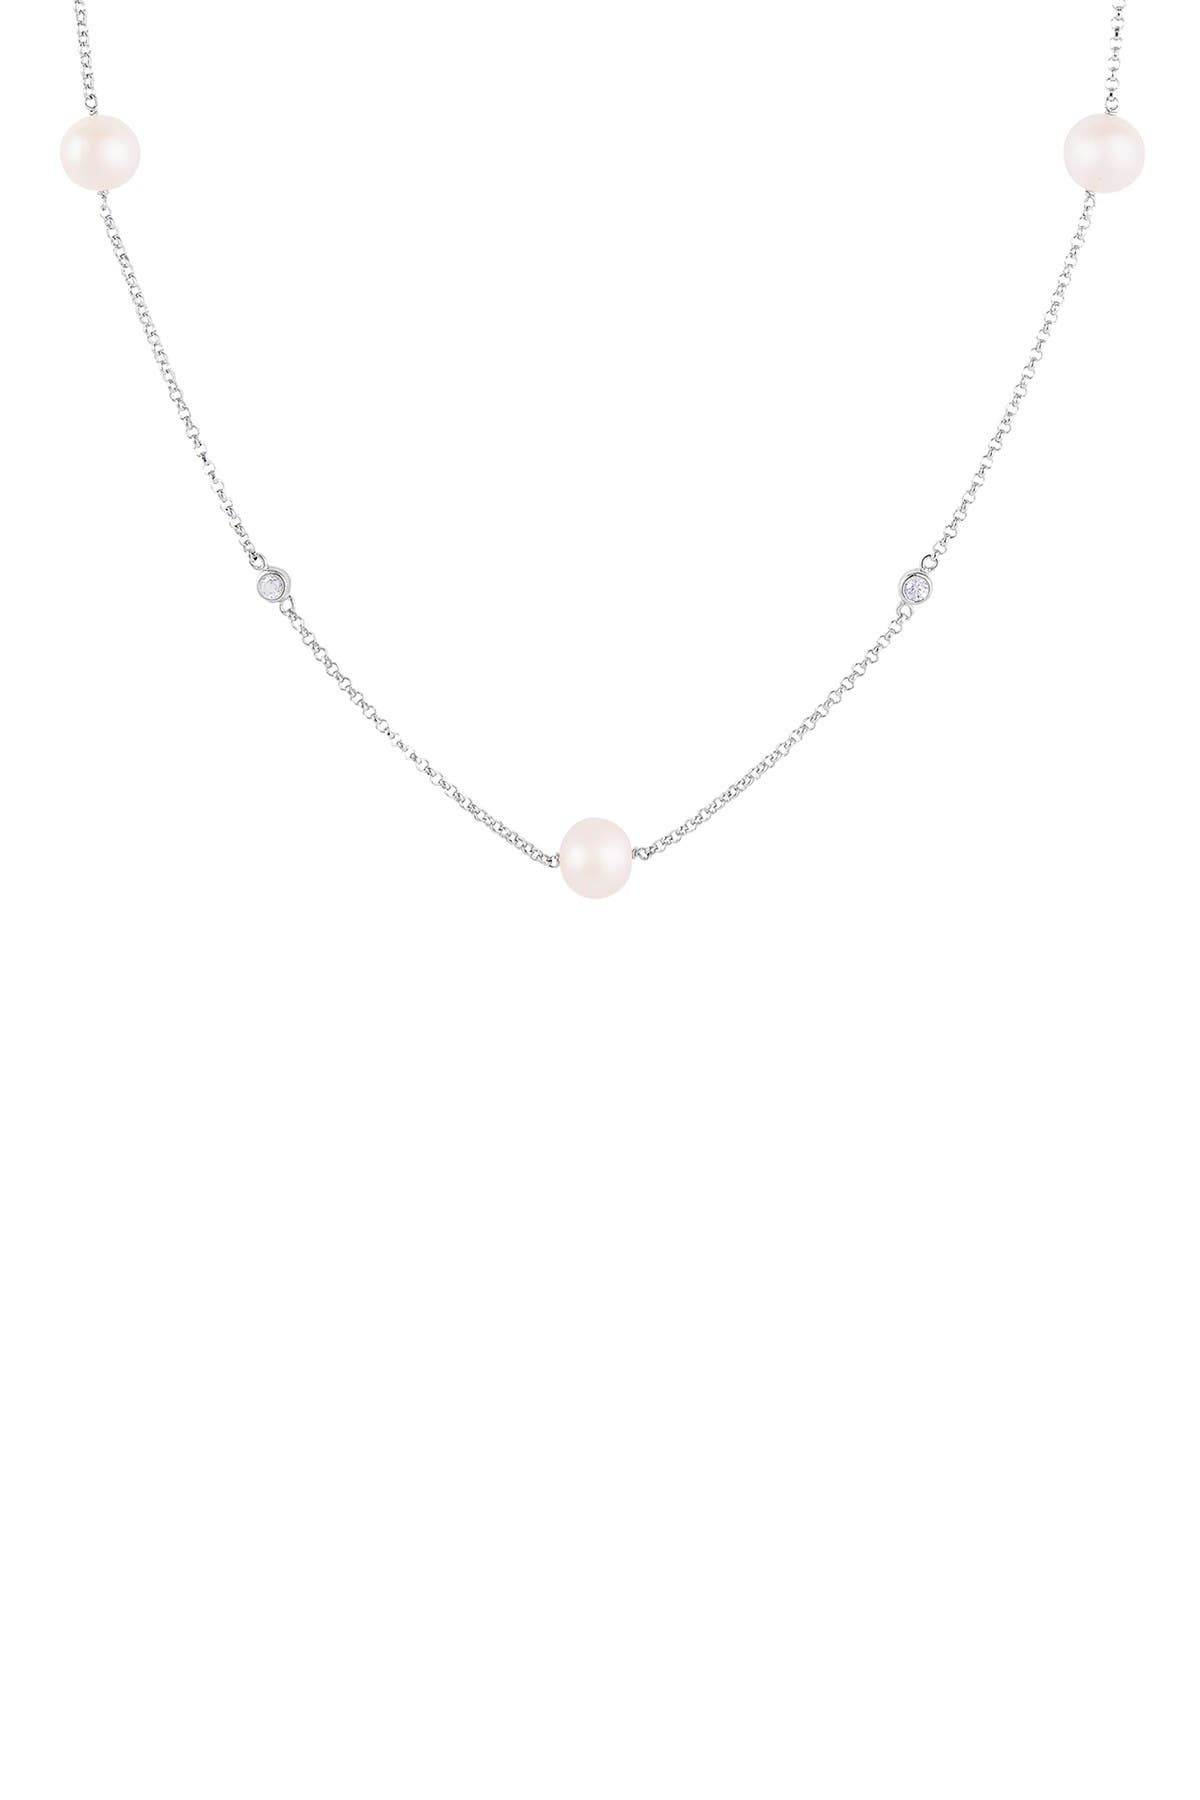 Image of Splendid Pearls CZ & Pearl Station Necklace